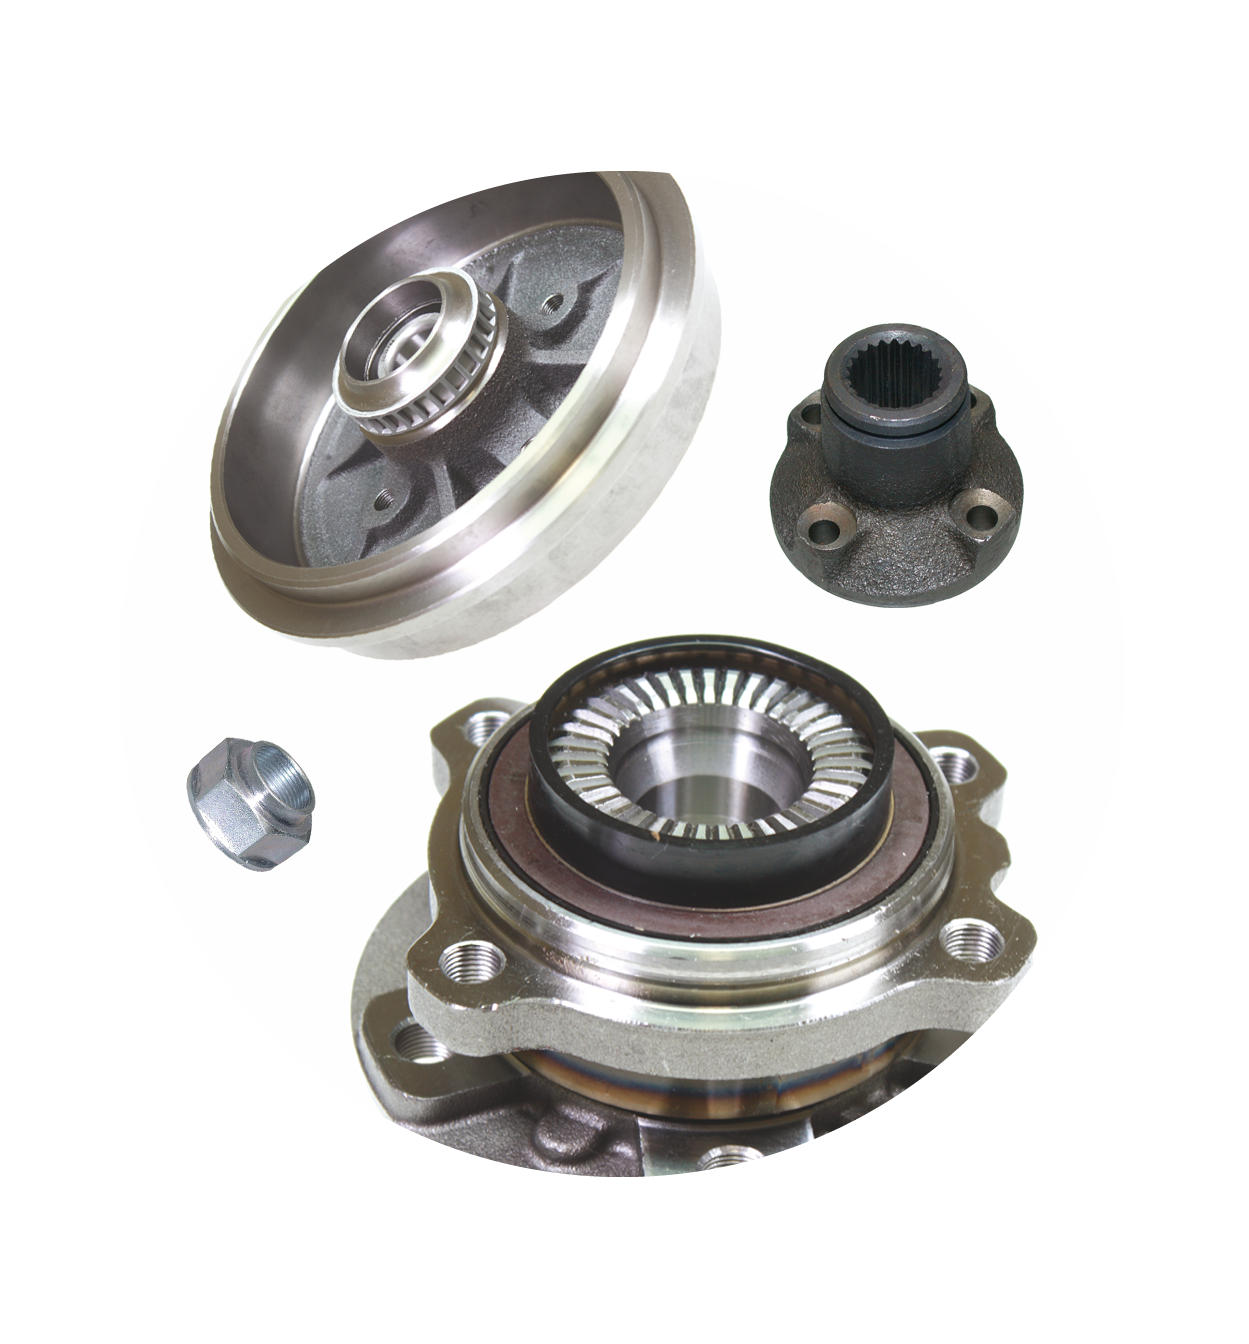 Wheel Hubs and Transmission Parts